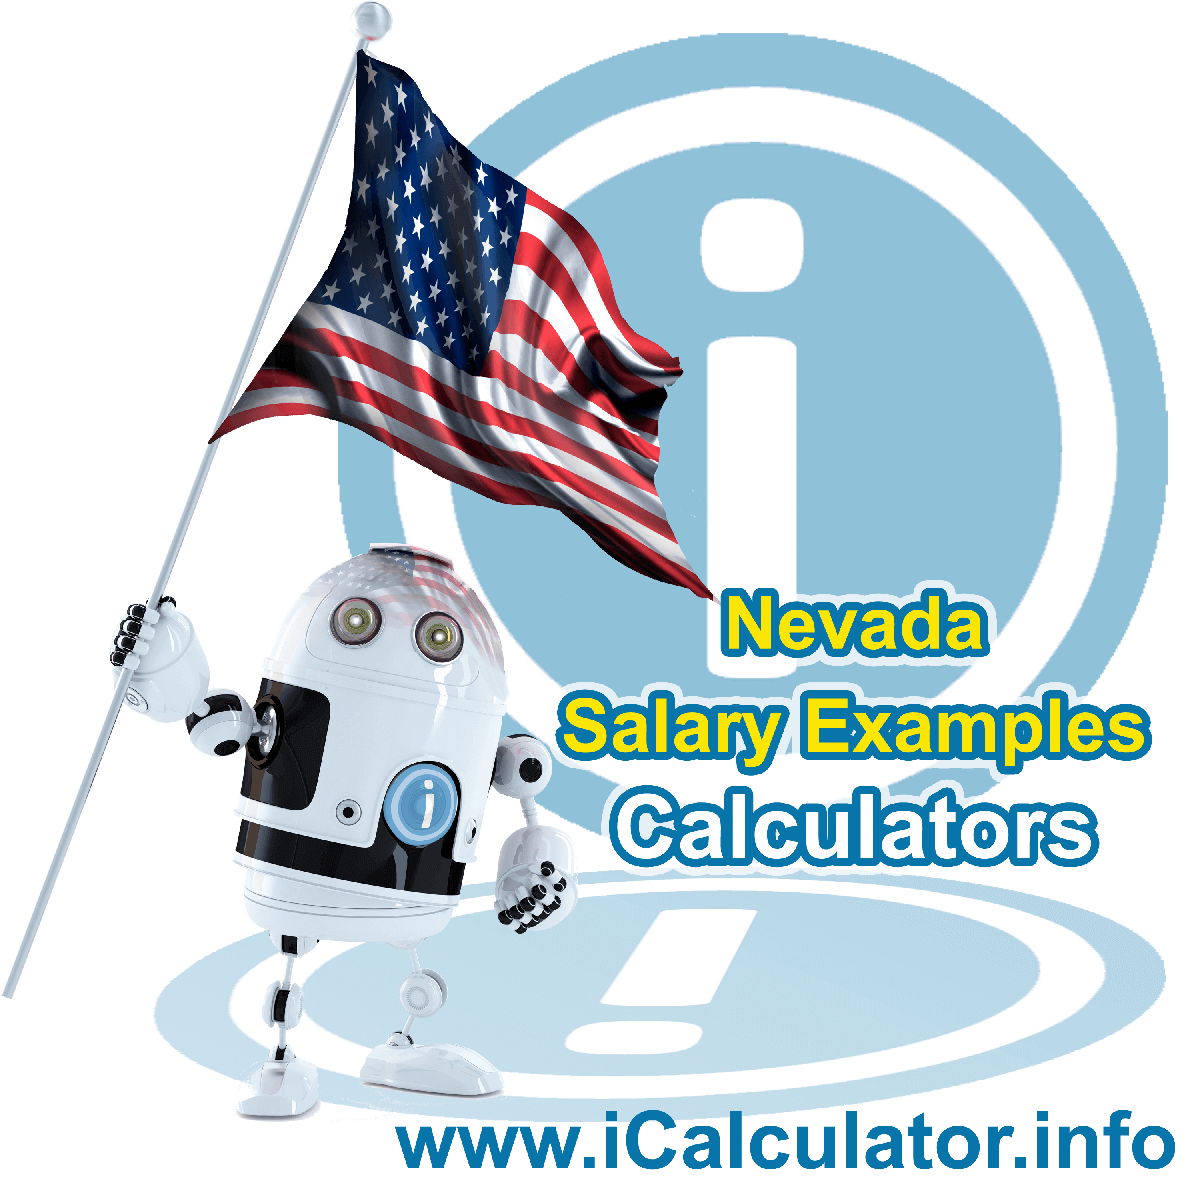 Nevada Salary Example for $90,000.00 in 2020 | iCalculator | $90,000.00 salary example for employee and employer paying Nevada State tincome taxes. Detailed salary after tax calculation including Nevada State Tax, Federal State Tax, Medicare Deductions, Social Security, Capital Gains and other income tax and salary deductions complete with supporting Nevada state tax tables